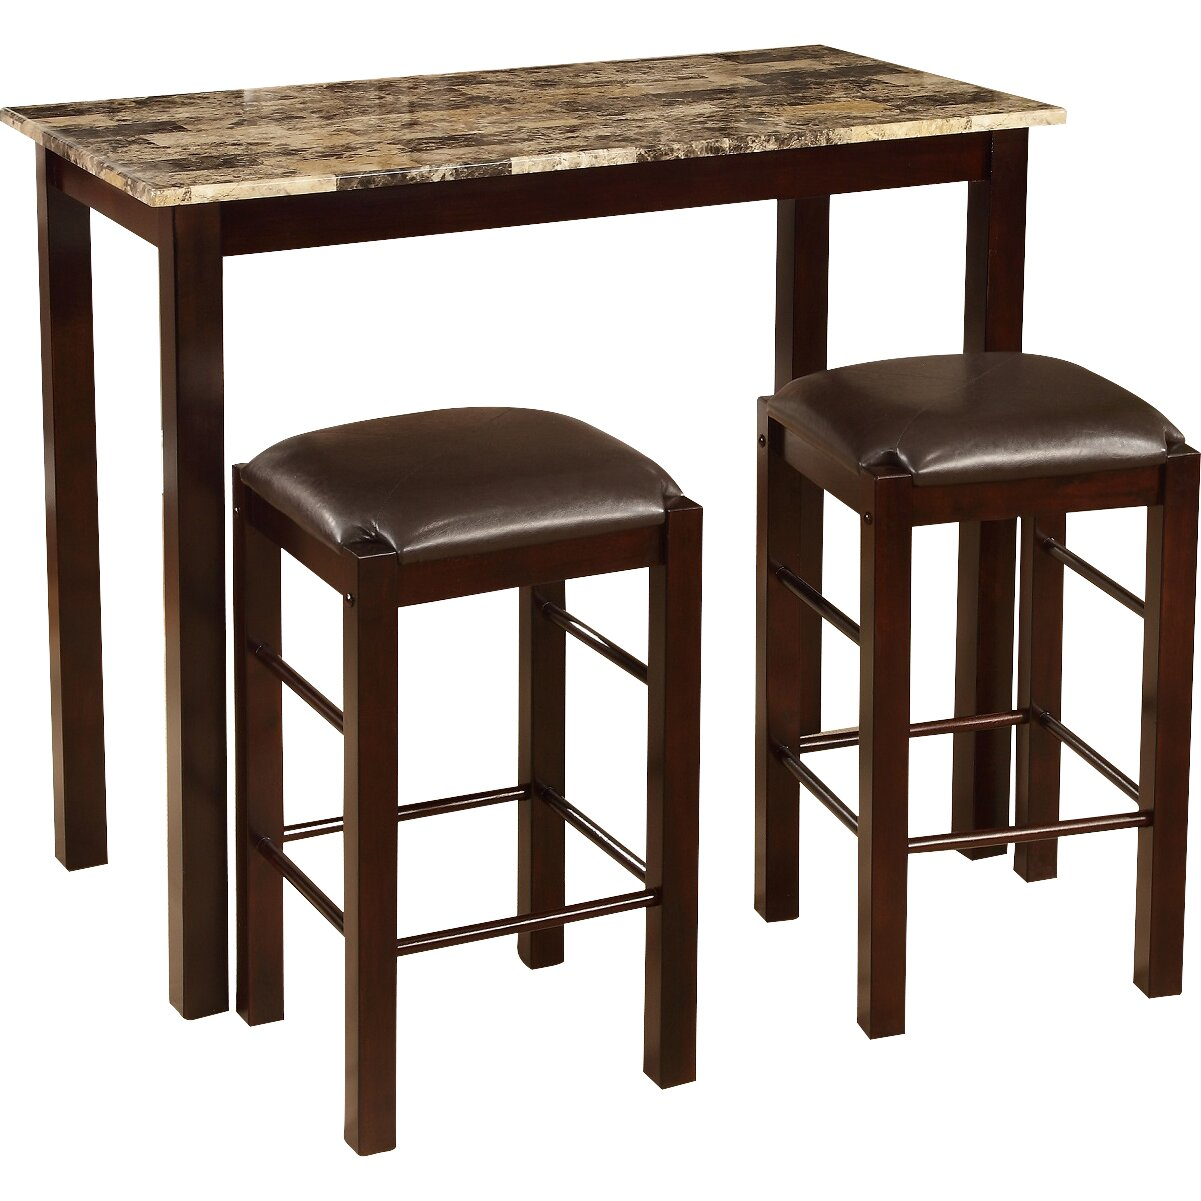 Roundhill furniture brando 3 piece counter height dining for Counter height dining set